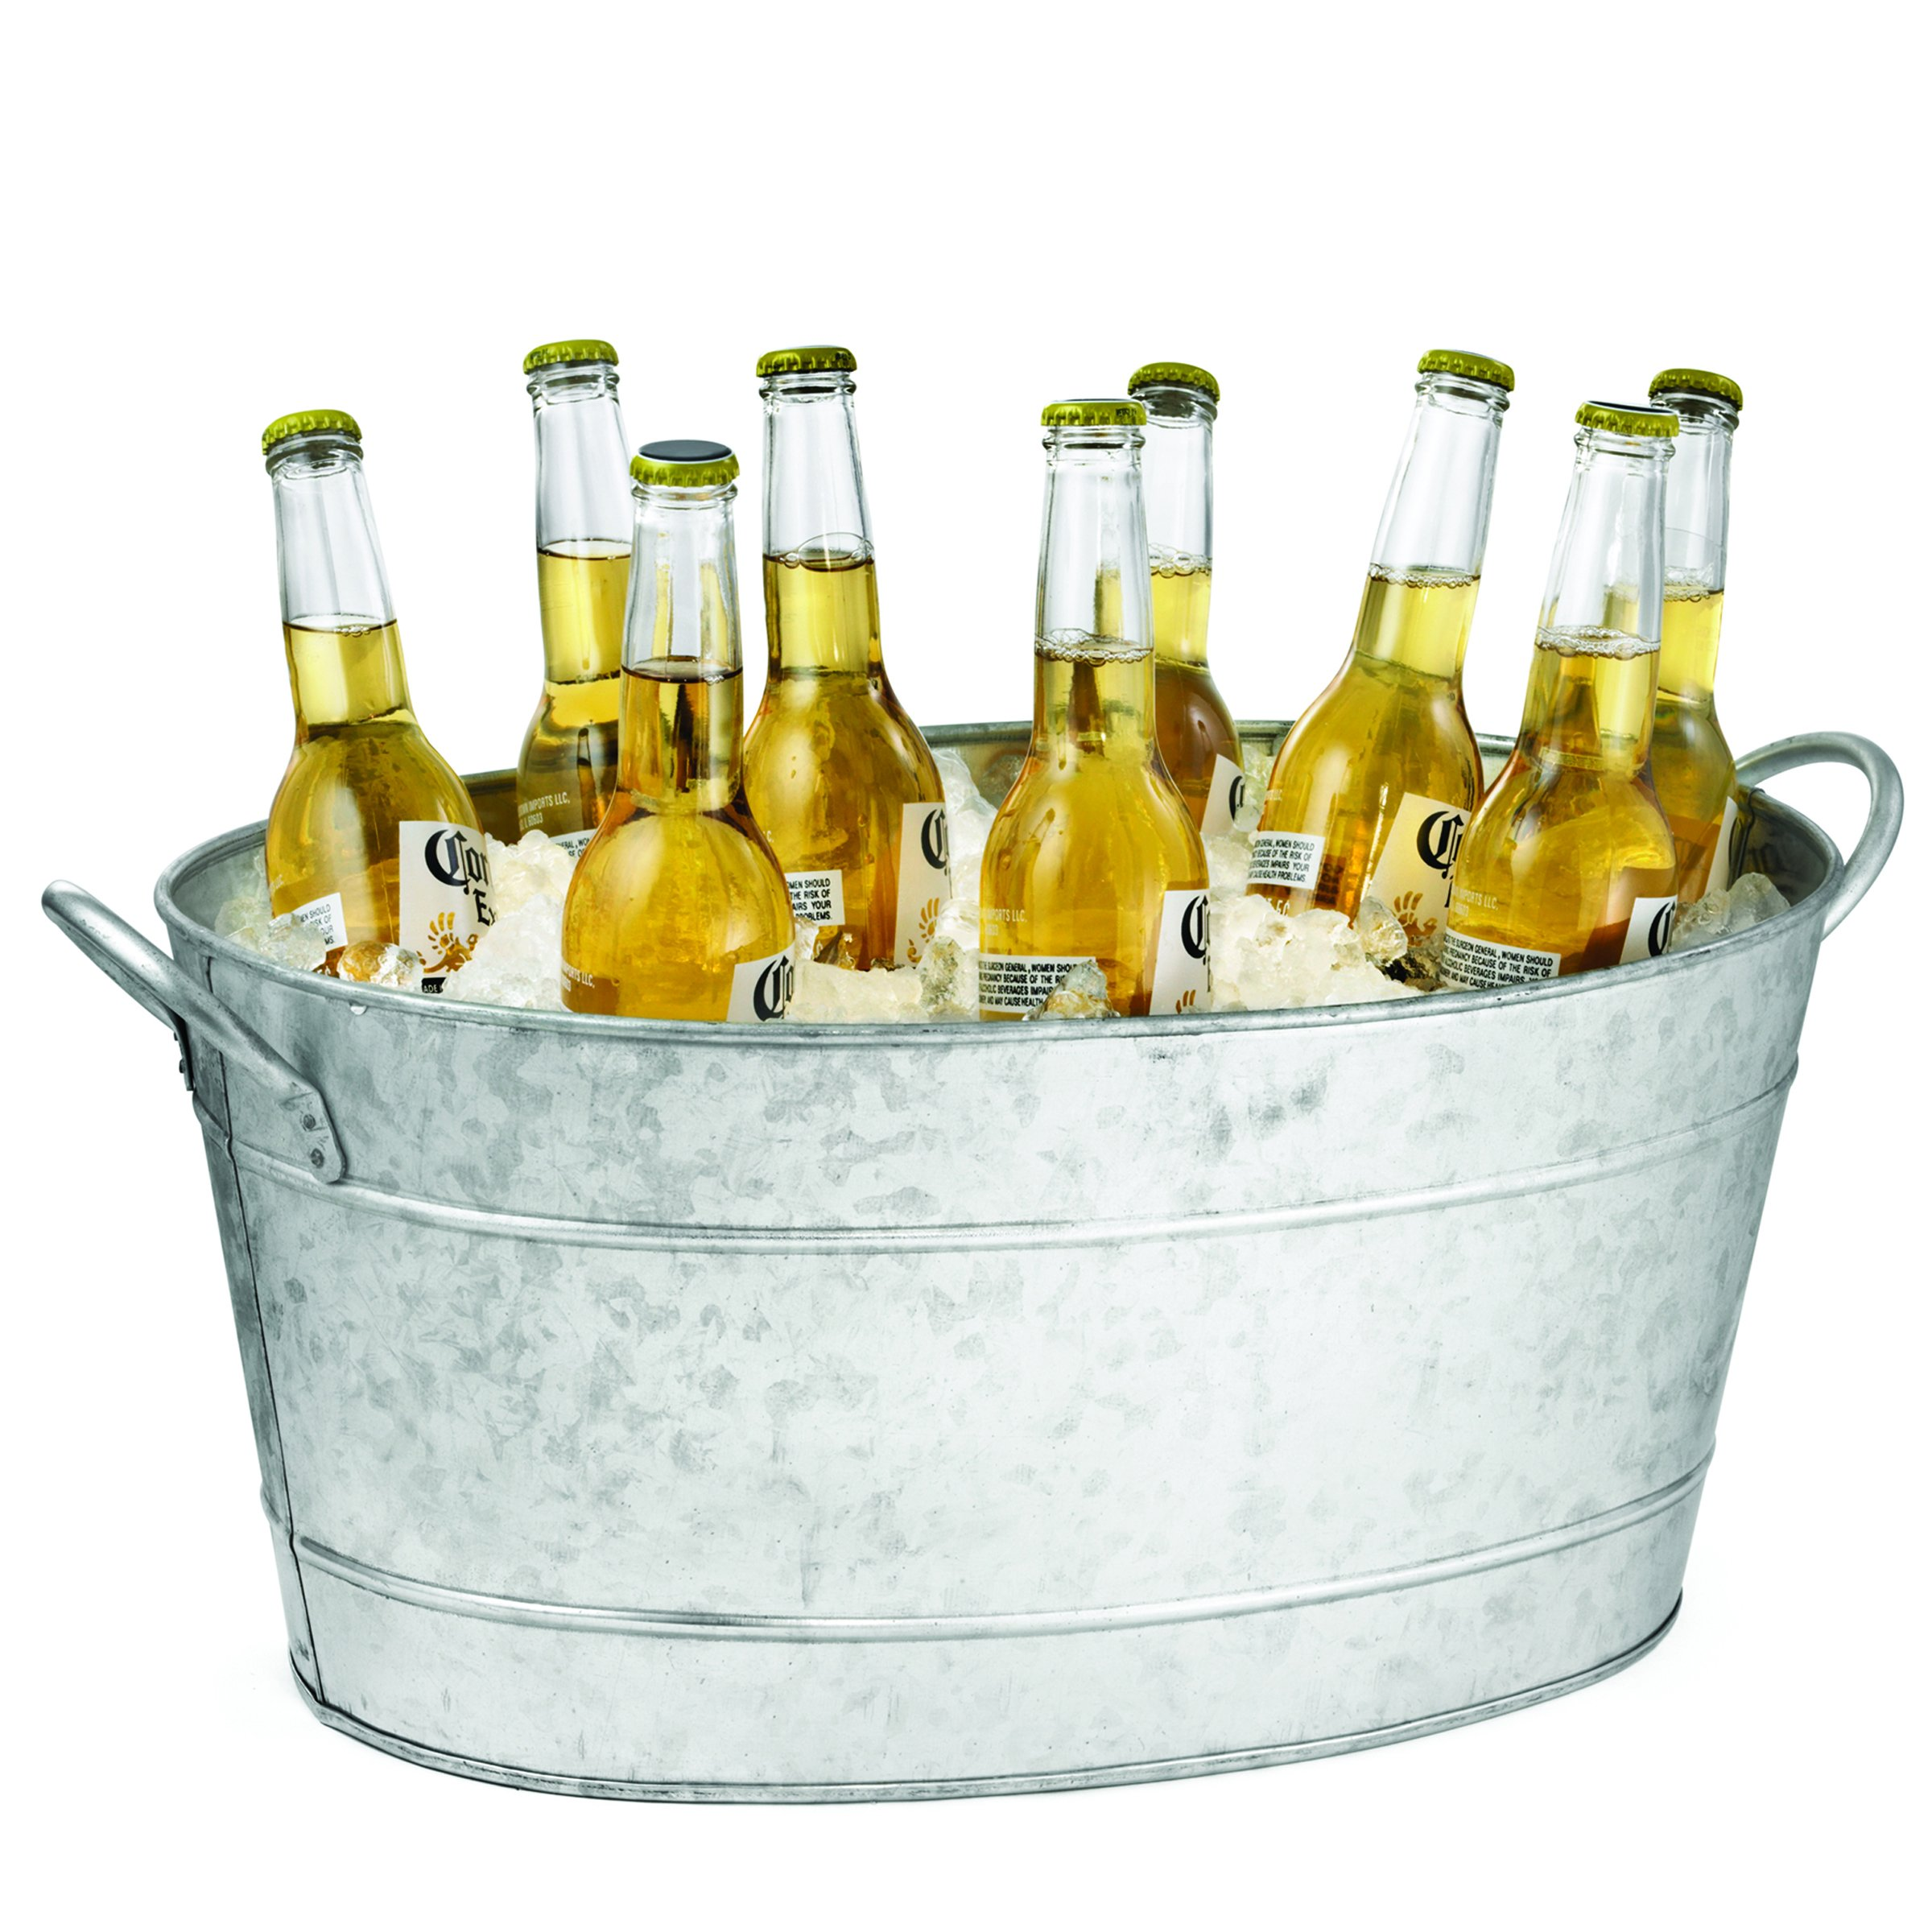 Tablecraft IR 4033 Galvanized Beverage Tub, 5.5 Gallon Silver